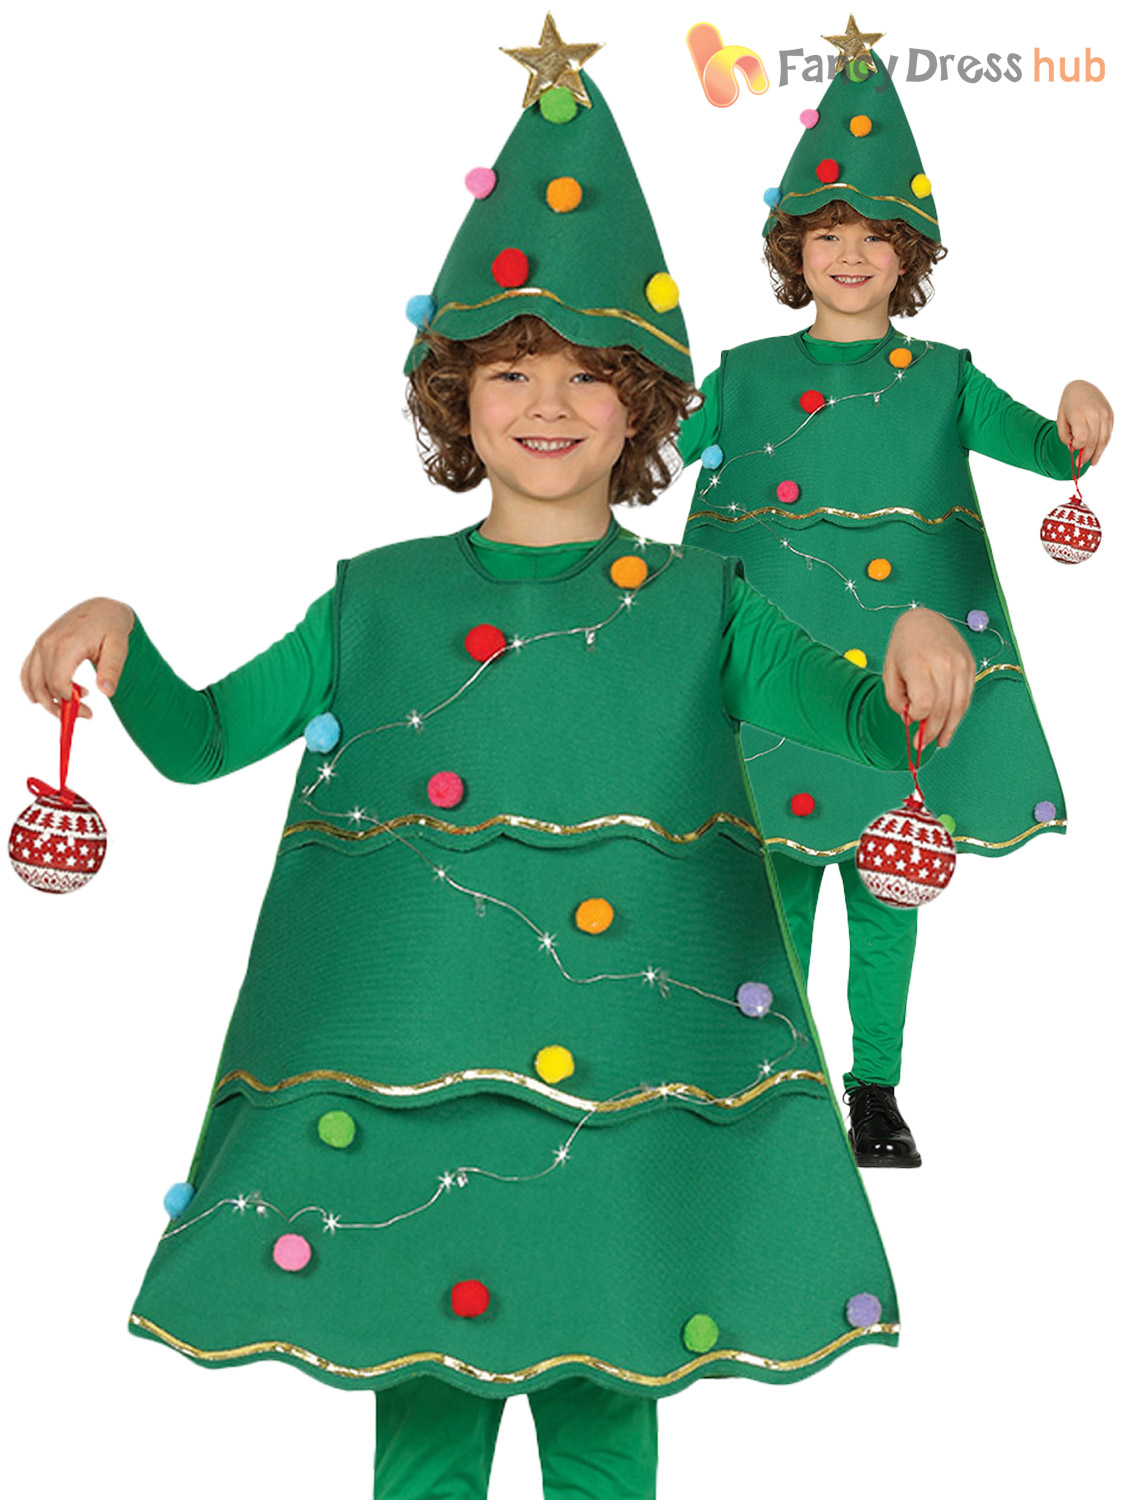 Christmas Tree Costume.Details About Kids Light Up Christmas Tree Costume Boys Girls Xmas Fancy Dress Xmas Outfit